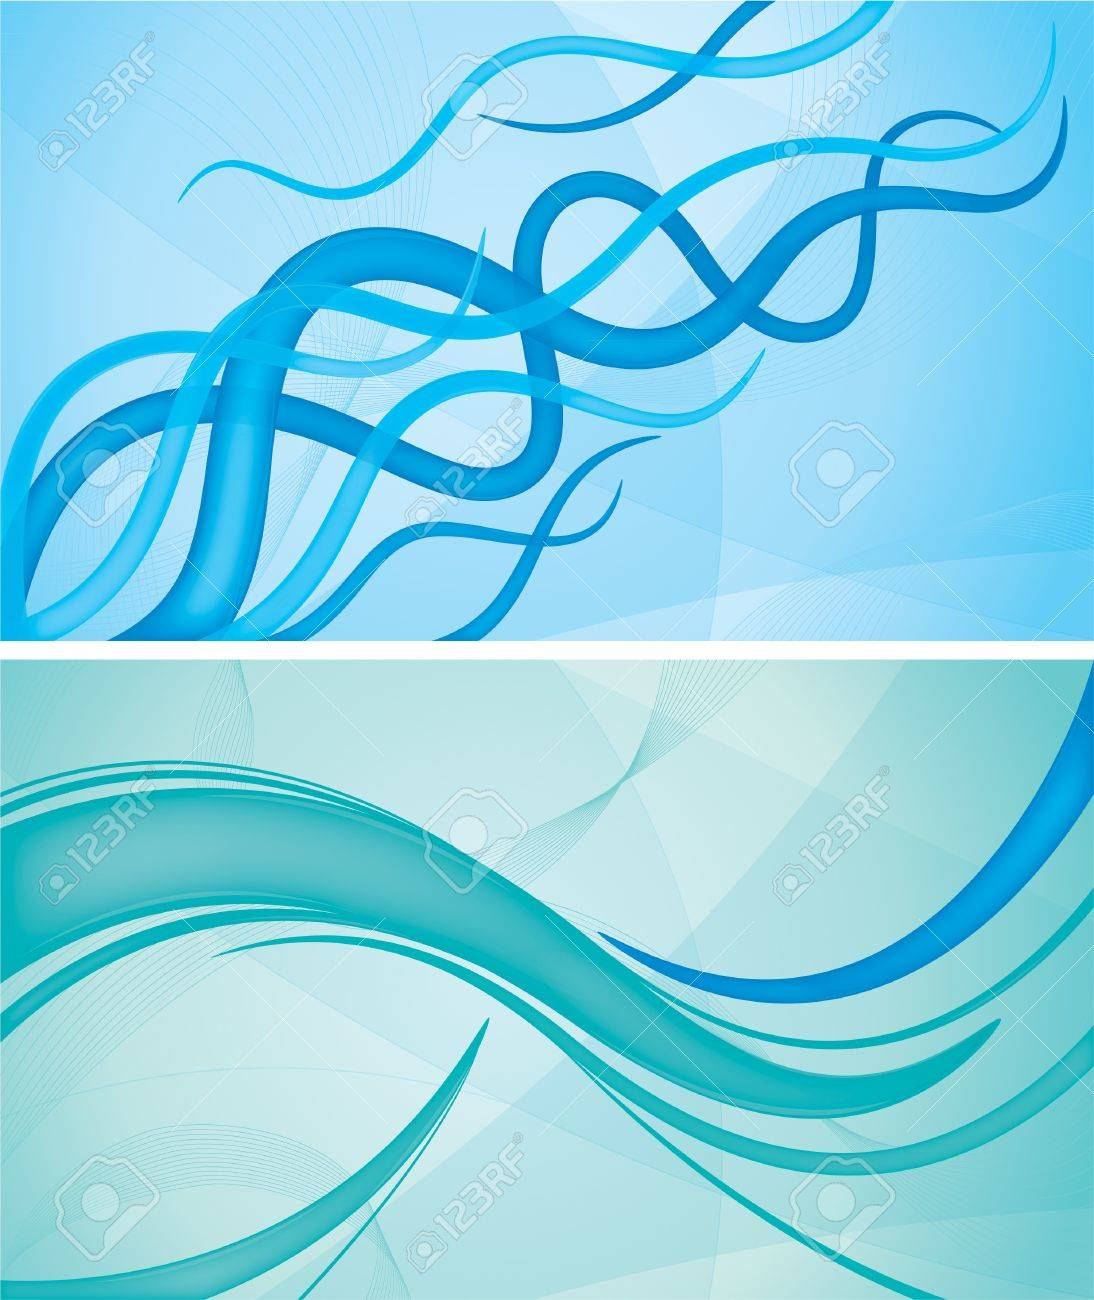 colorful wave backgrounds collection  Each background separately on different layers Stock Vector - 14474024